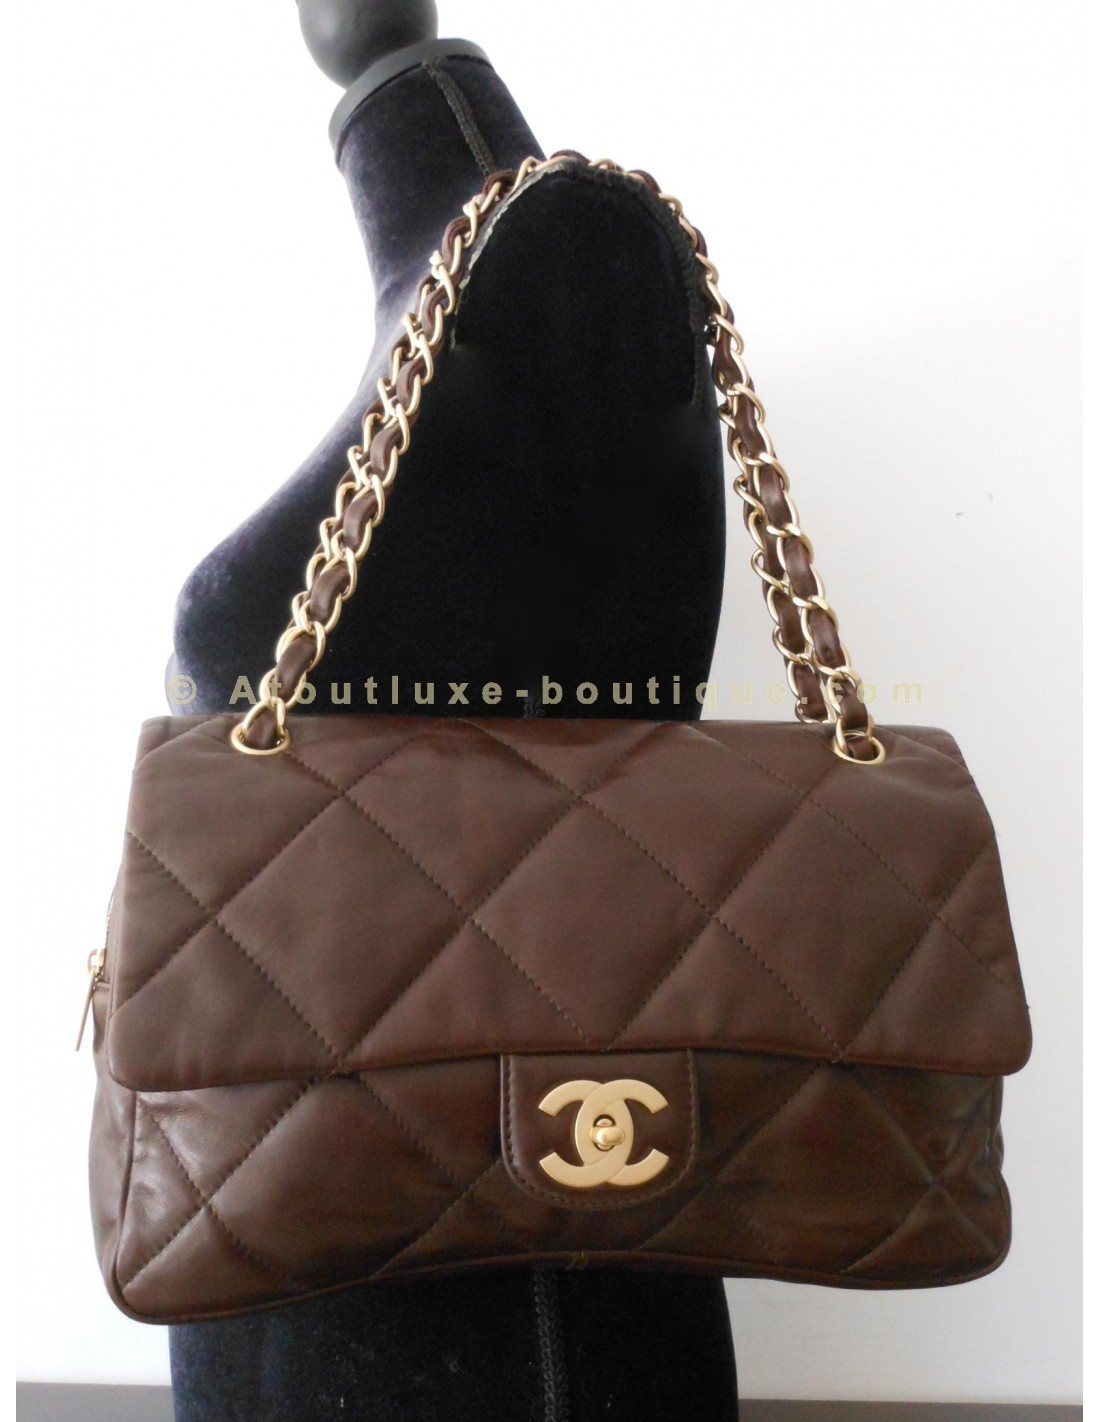 Sac chanel timeless grand modele chocolat atoutluxe boutique for Sac chanel interieur